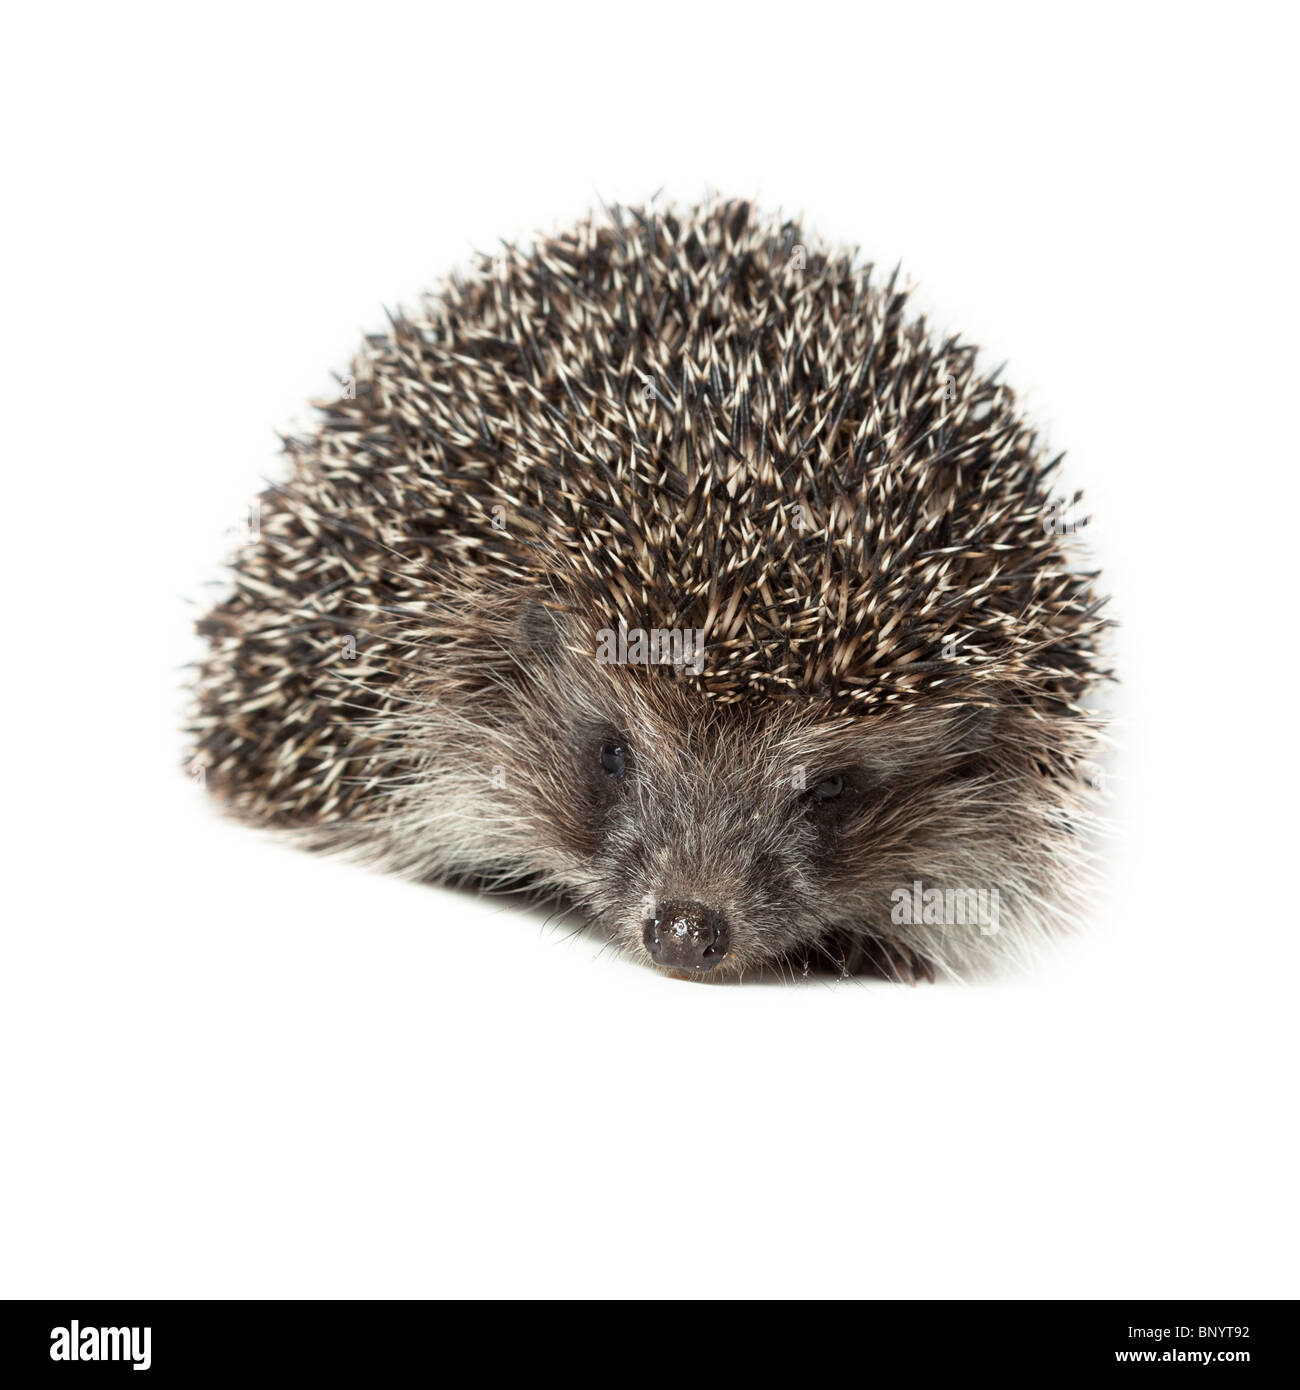 Young hedgehog in studio on the white background, isolated. Stock Photo